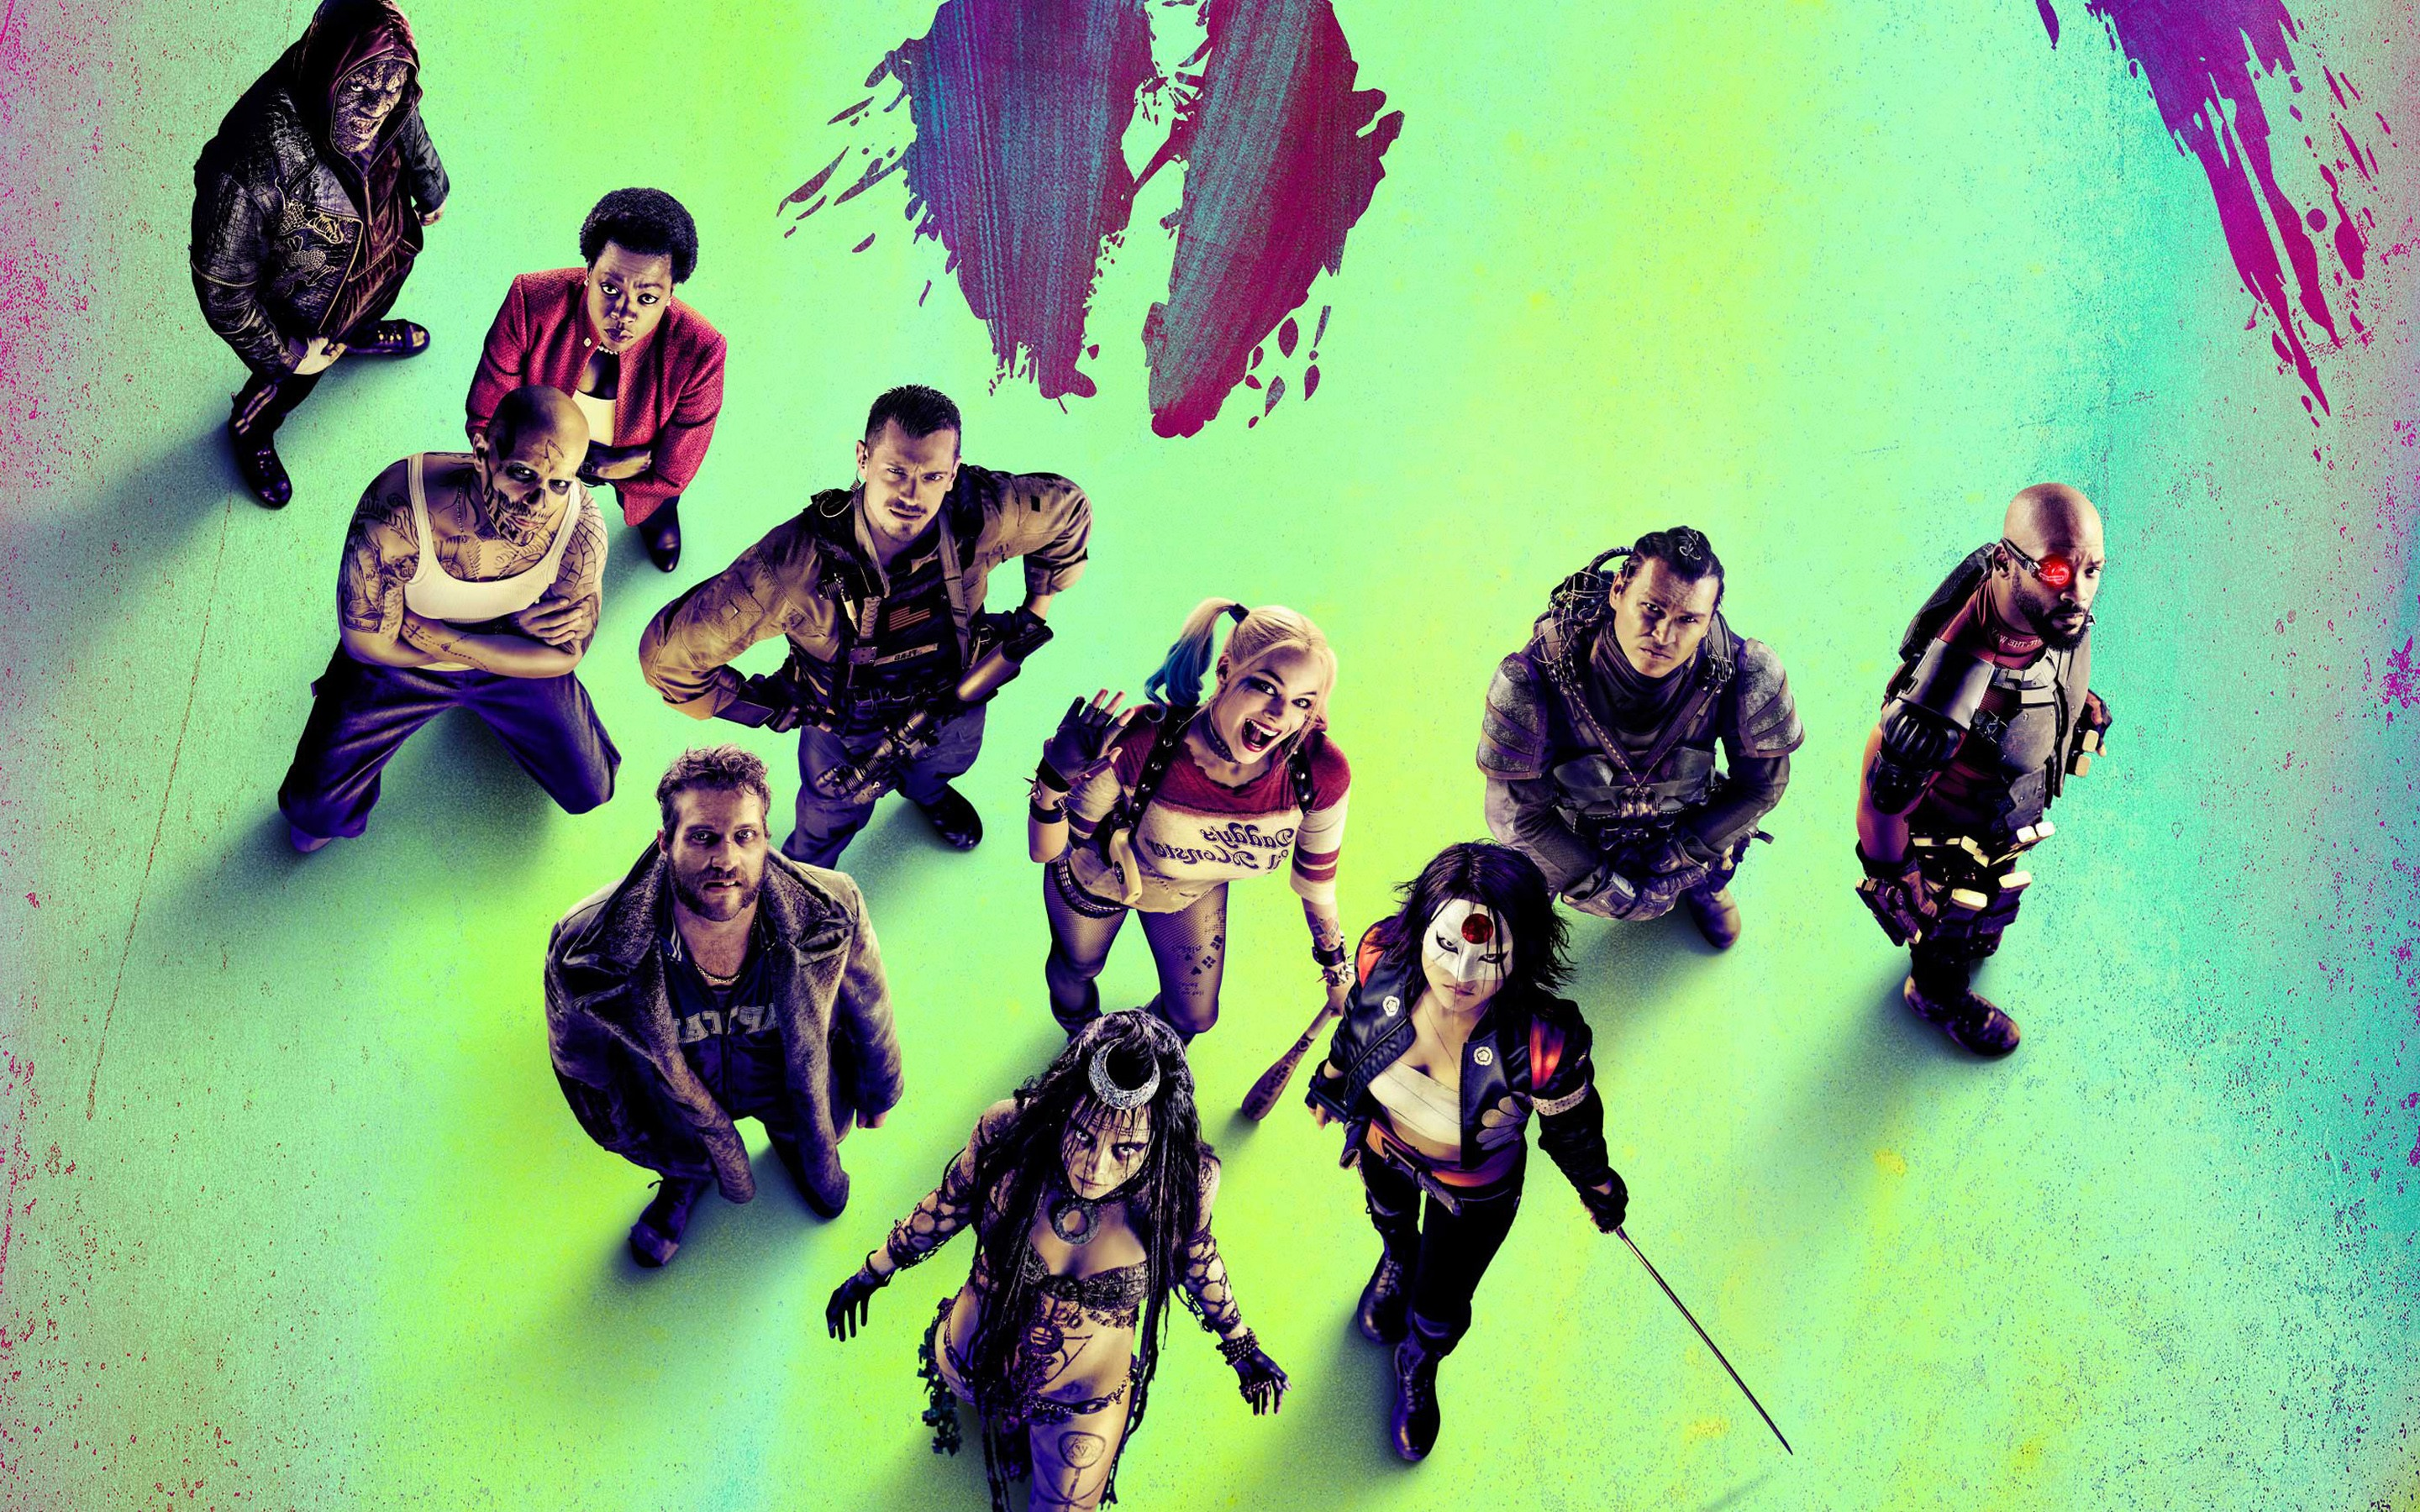 suicide squad wide wallpapers - photo #35